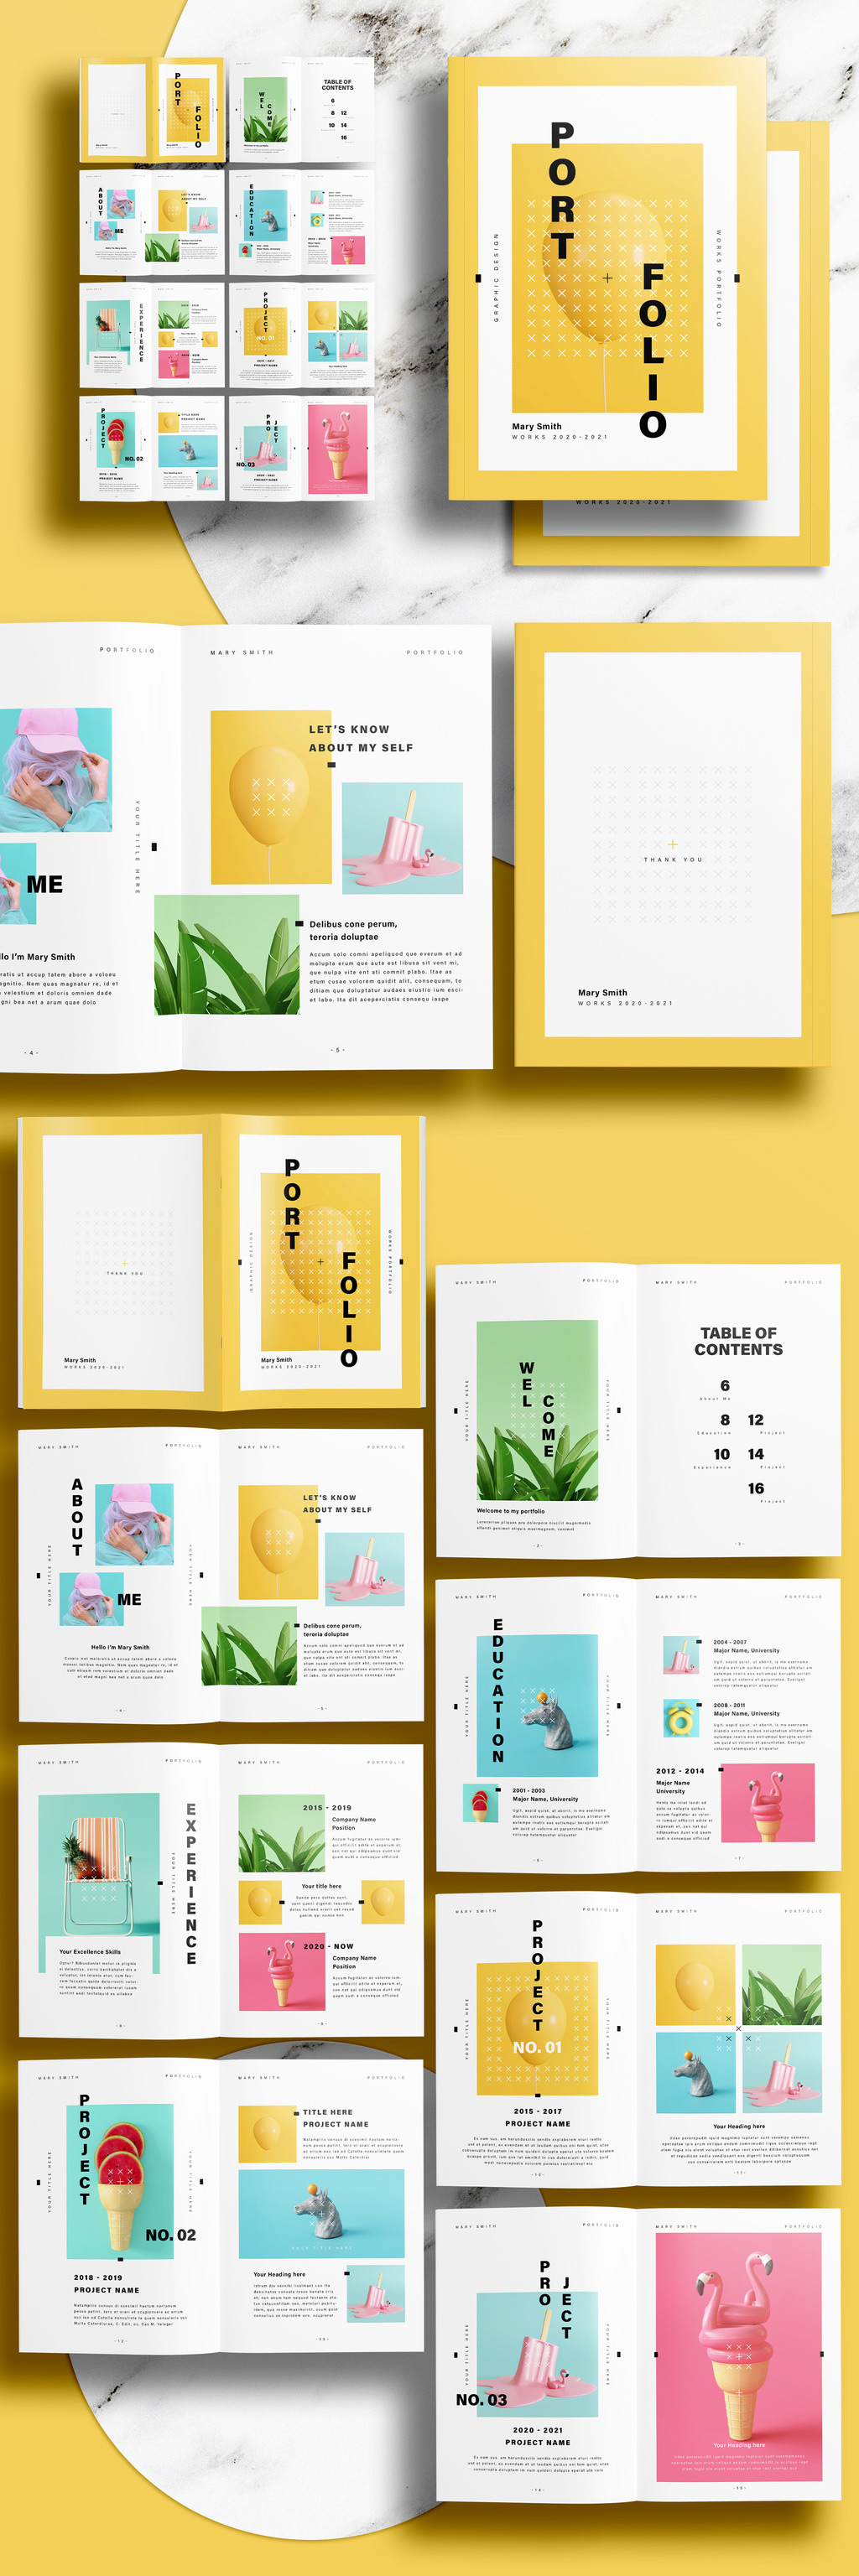 Portfolio InDesign Layout with Yellow Accents